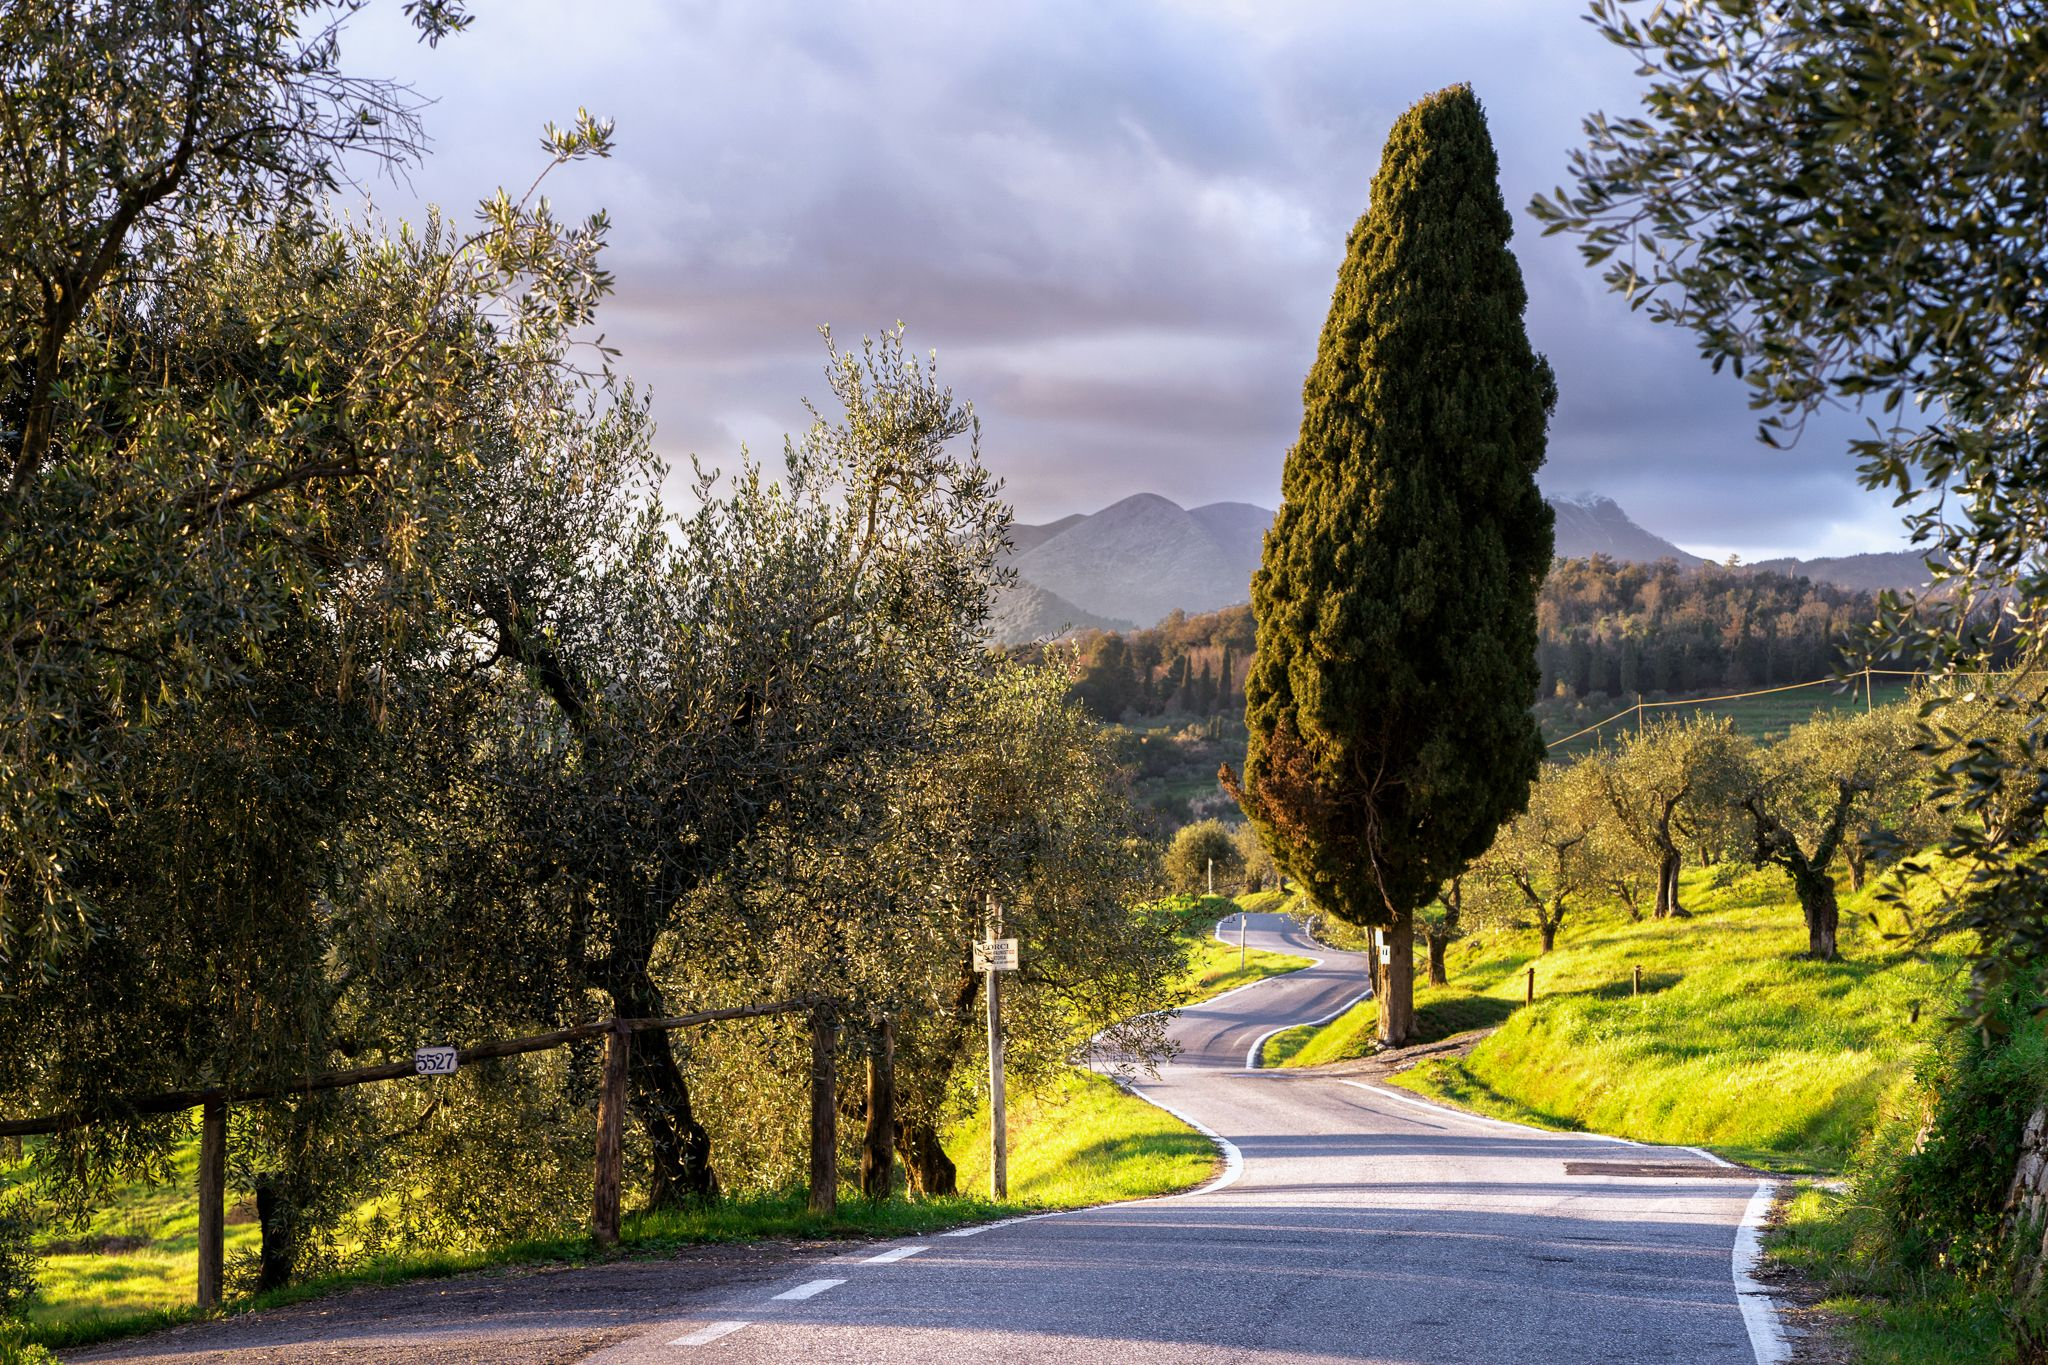 Olive groves of Lucca with the Apuan mountains in the distance. Photograph: Simone Orsucci